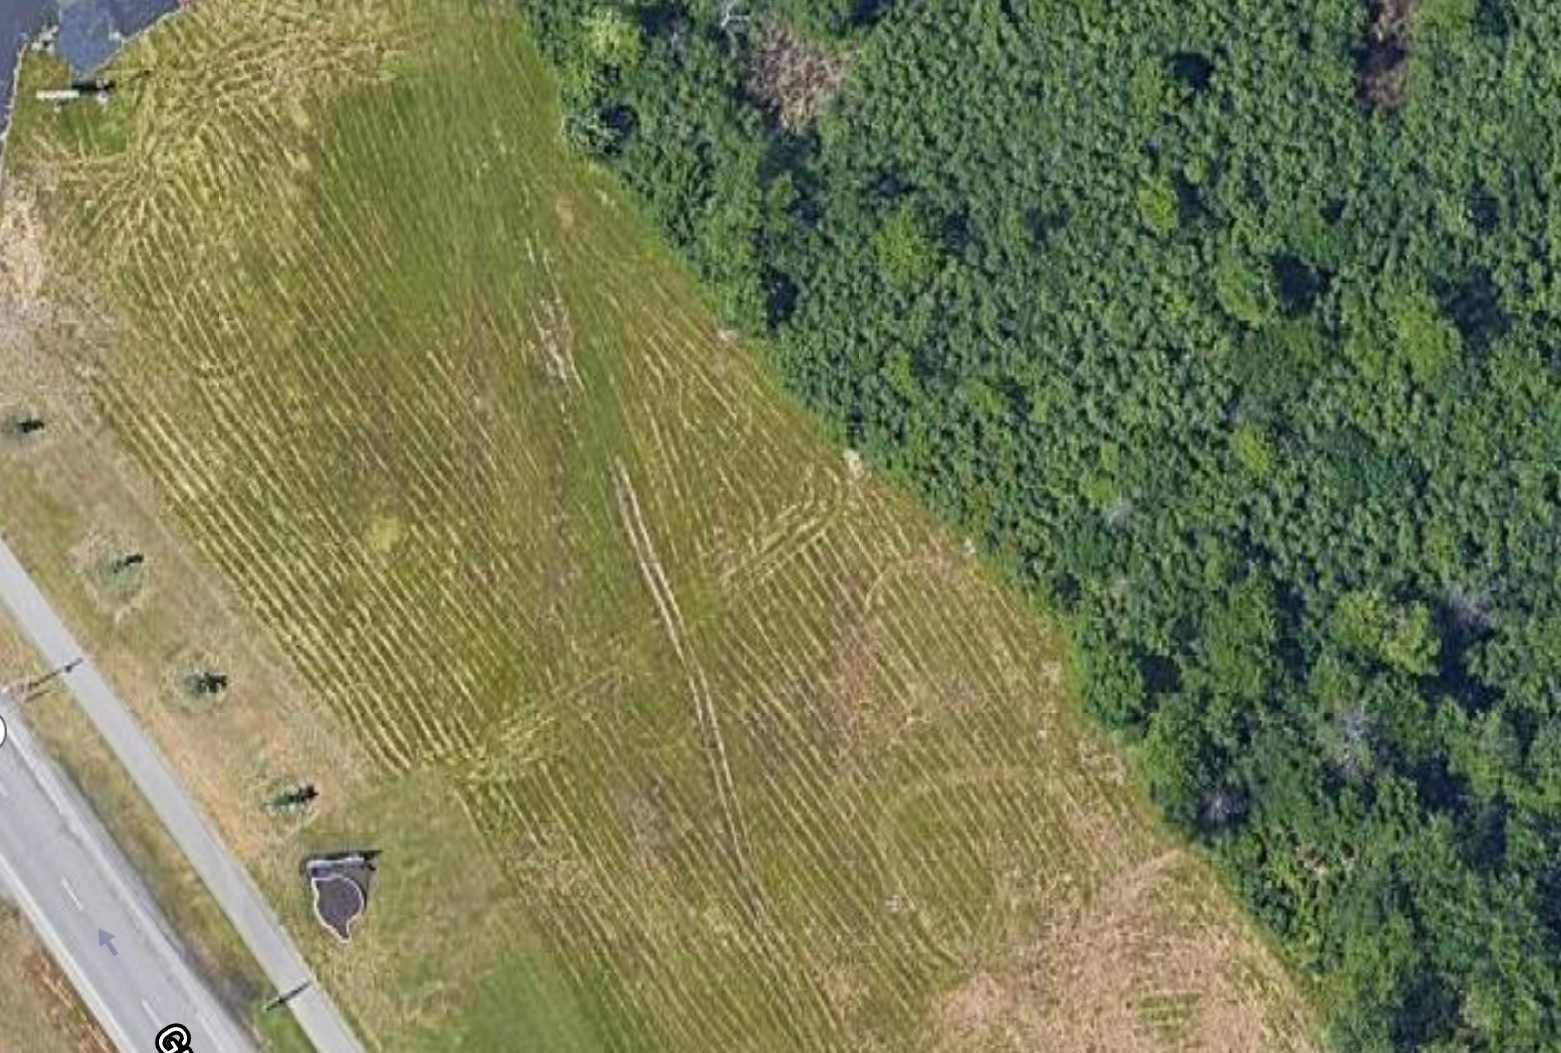 Commercial Development Land For Sale in Grand Island, NY